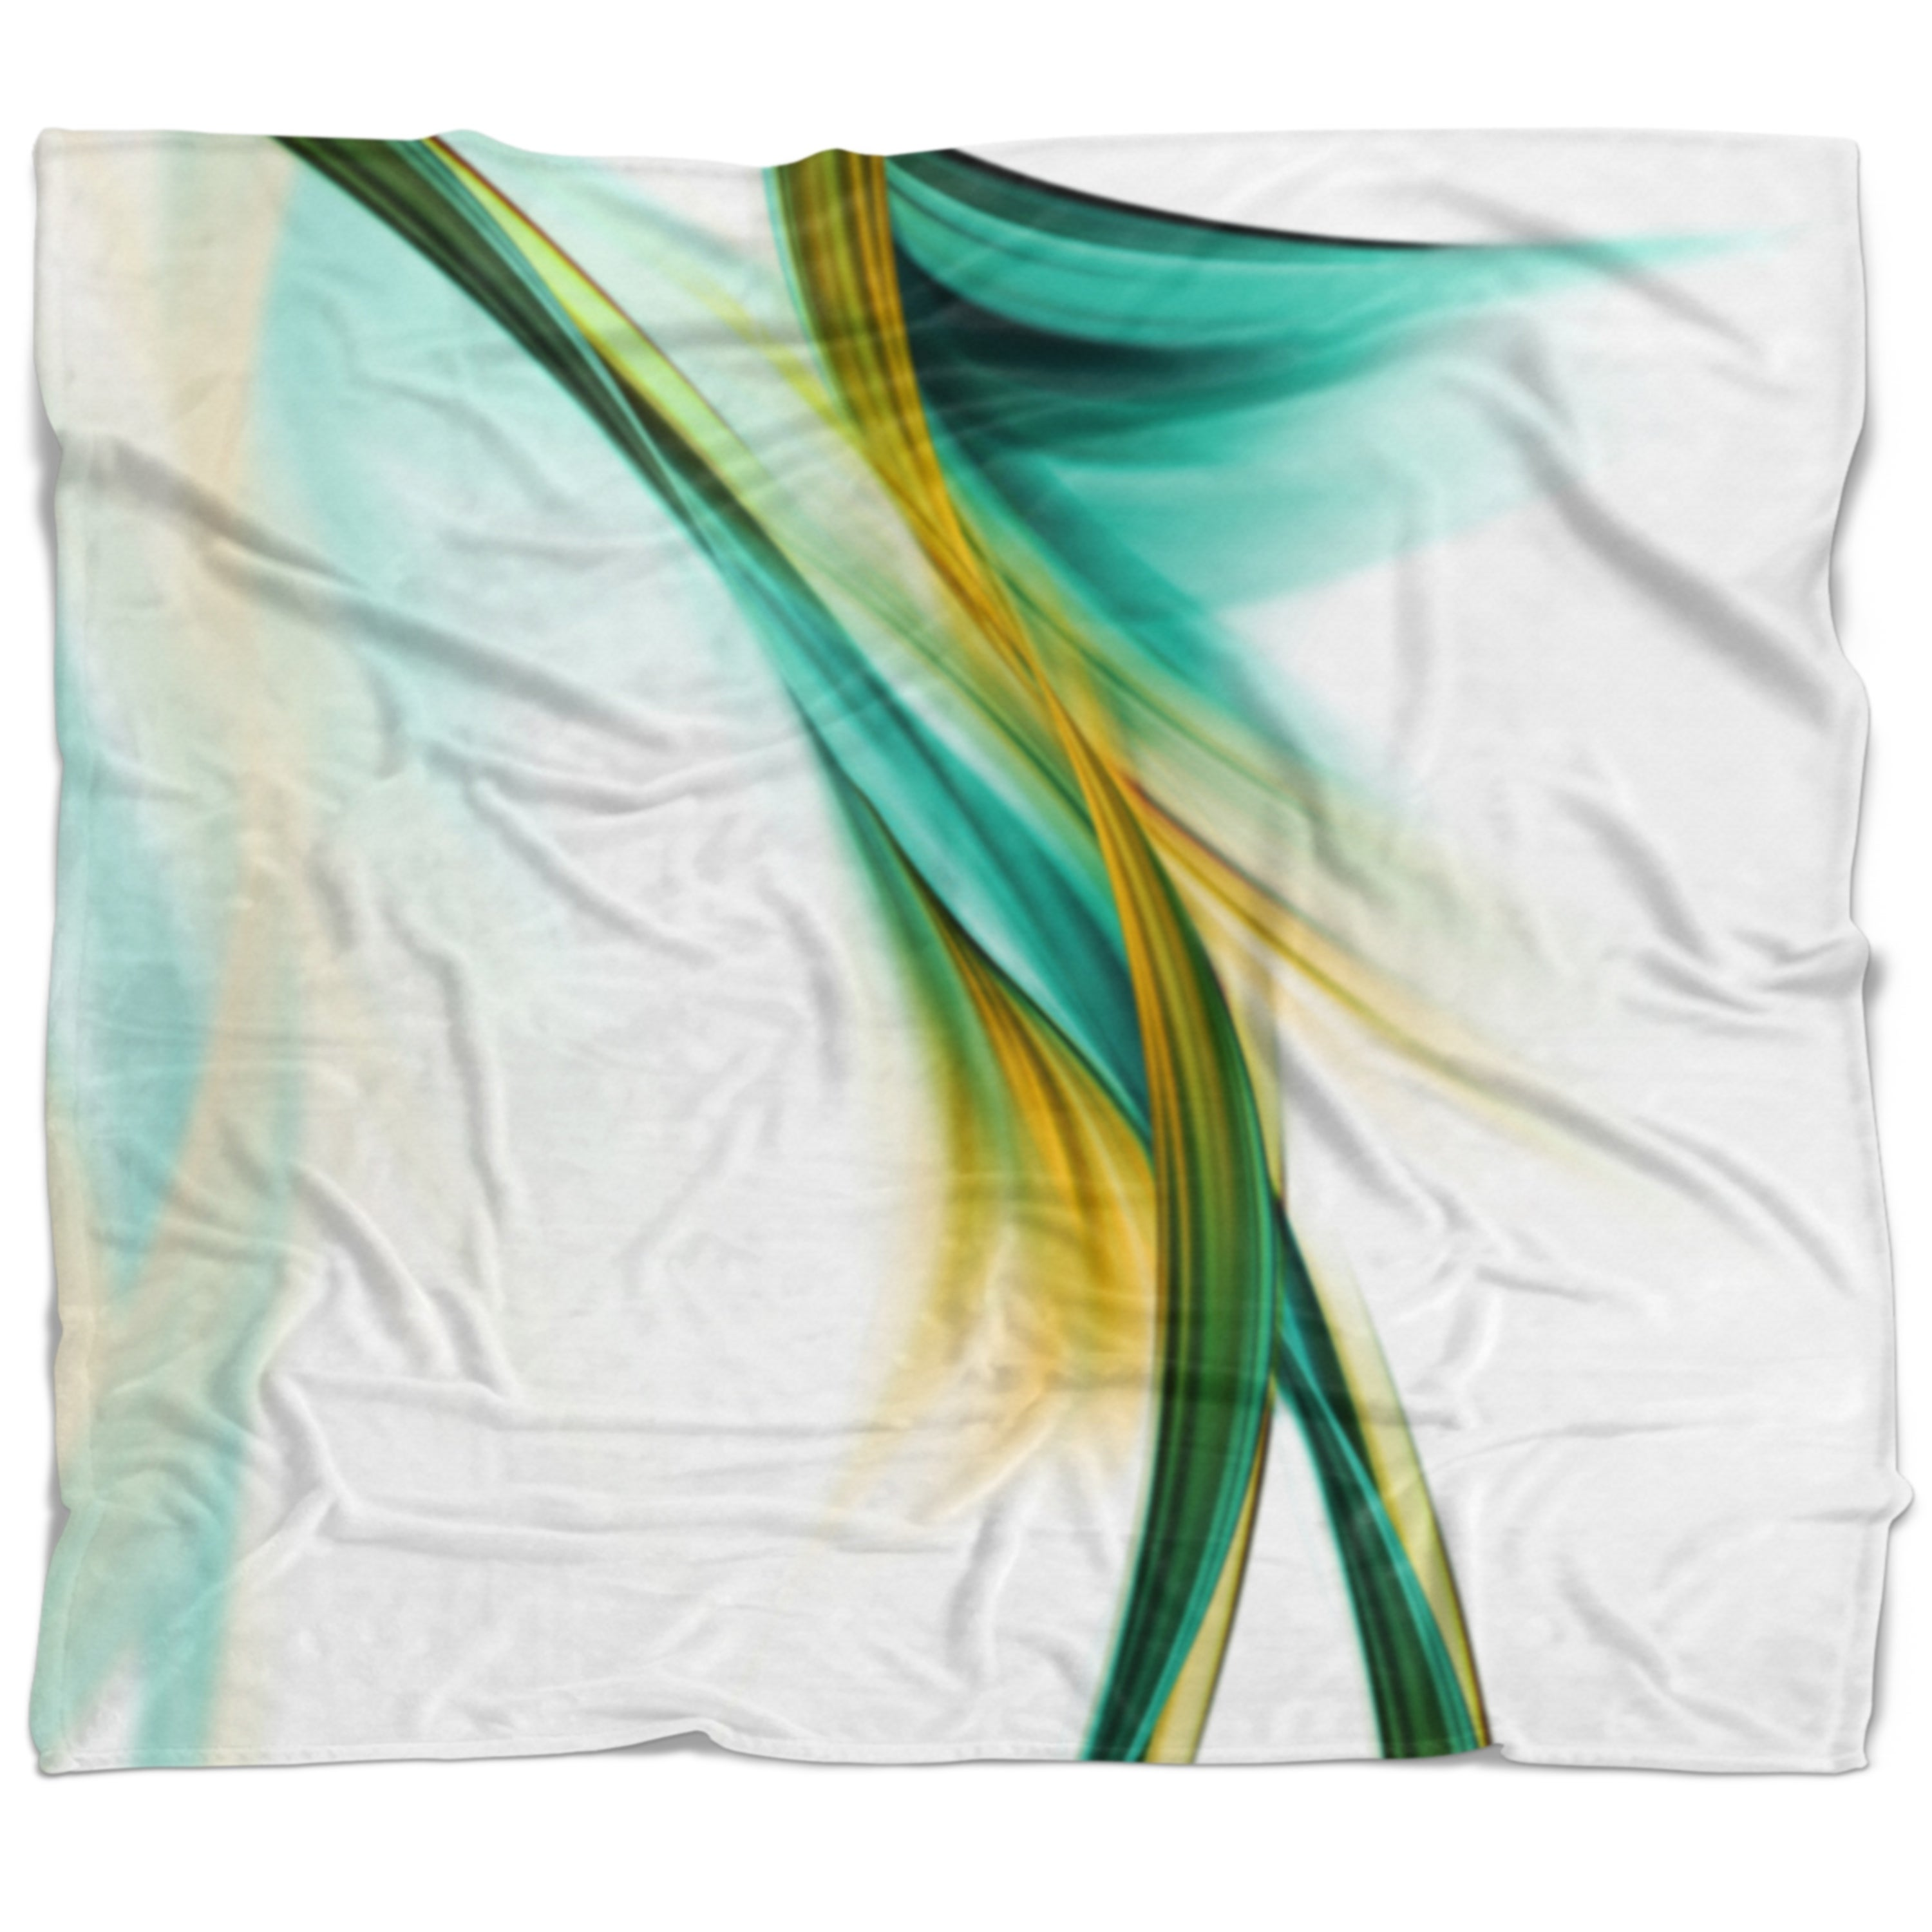 Designart Blue Gold Texture Pattern Abstract Throw Blanket On Sale Overstock 20911969 71 In X 59 In